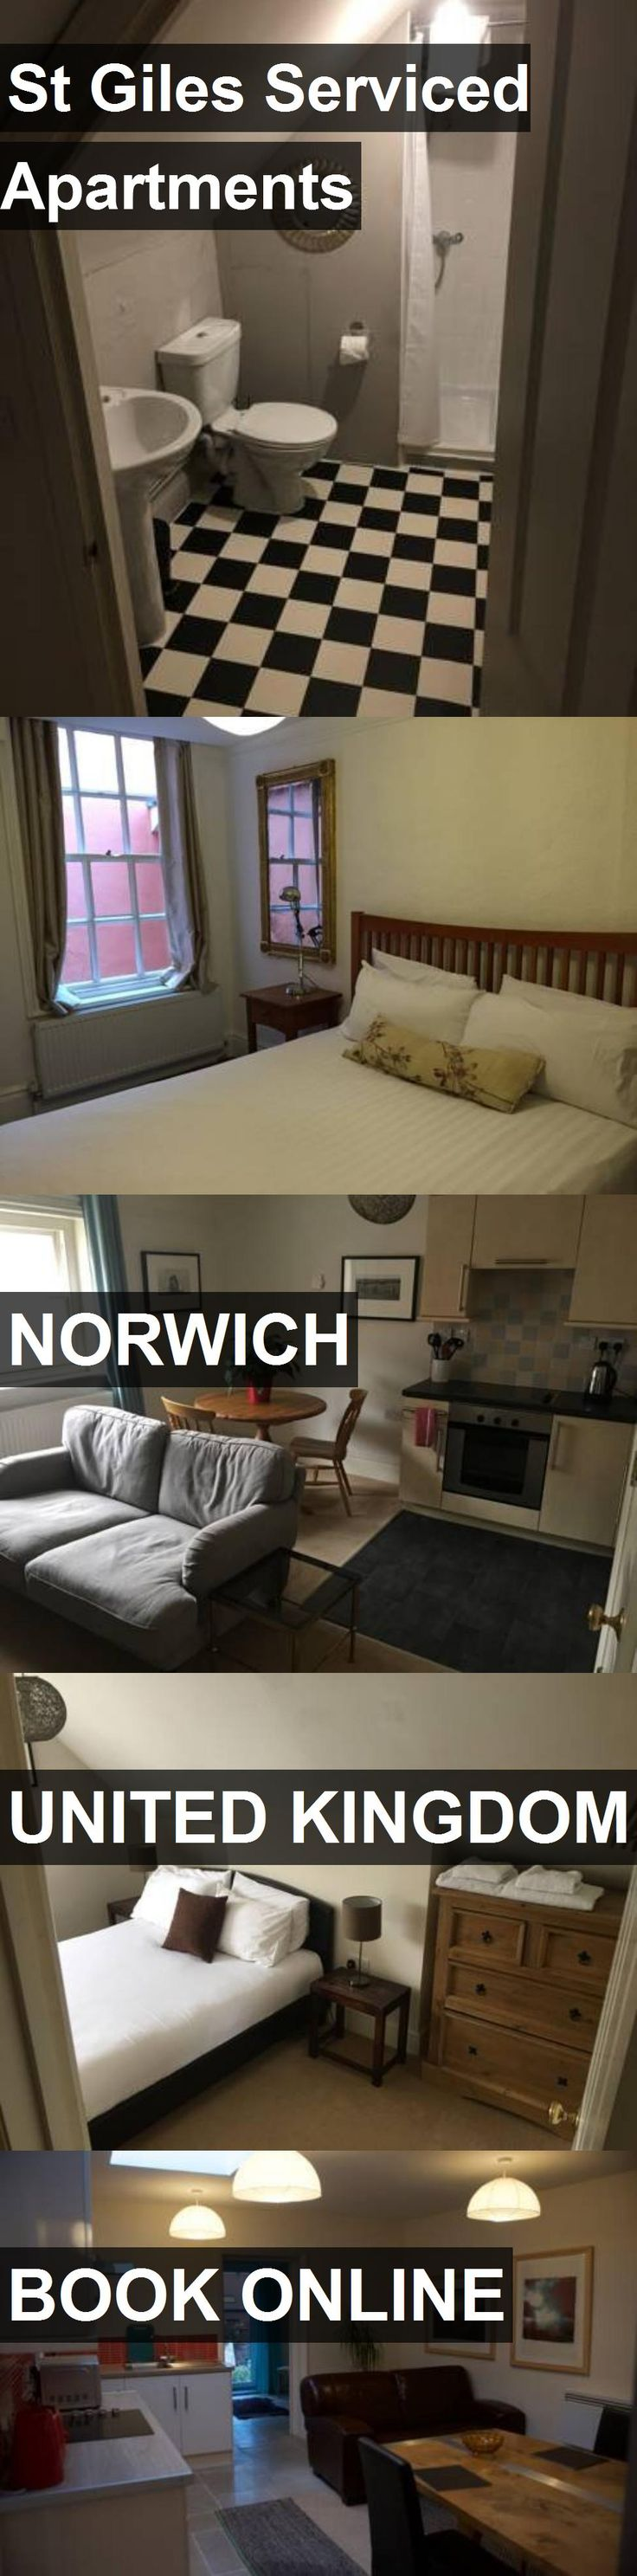 Hotel St Giles Serviced Apartments in Norwich, United Kingdom. For more information, photos, reviews and best prices please follow the link. #UnitedKingdom #Norwich #StGilesServicedApartments #hotel #travel #vacation